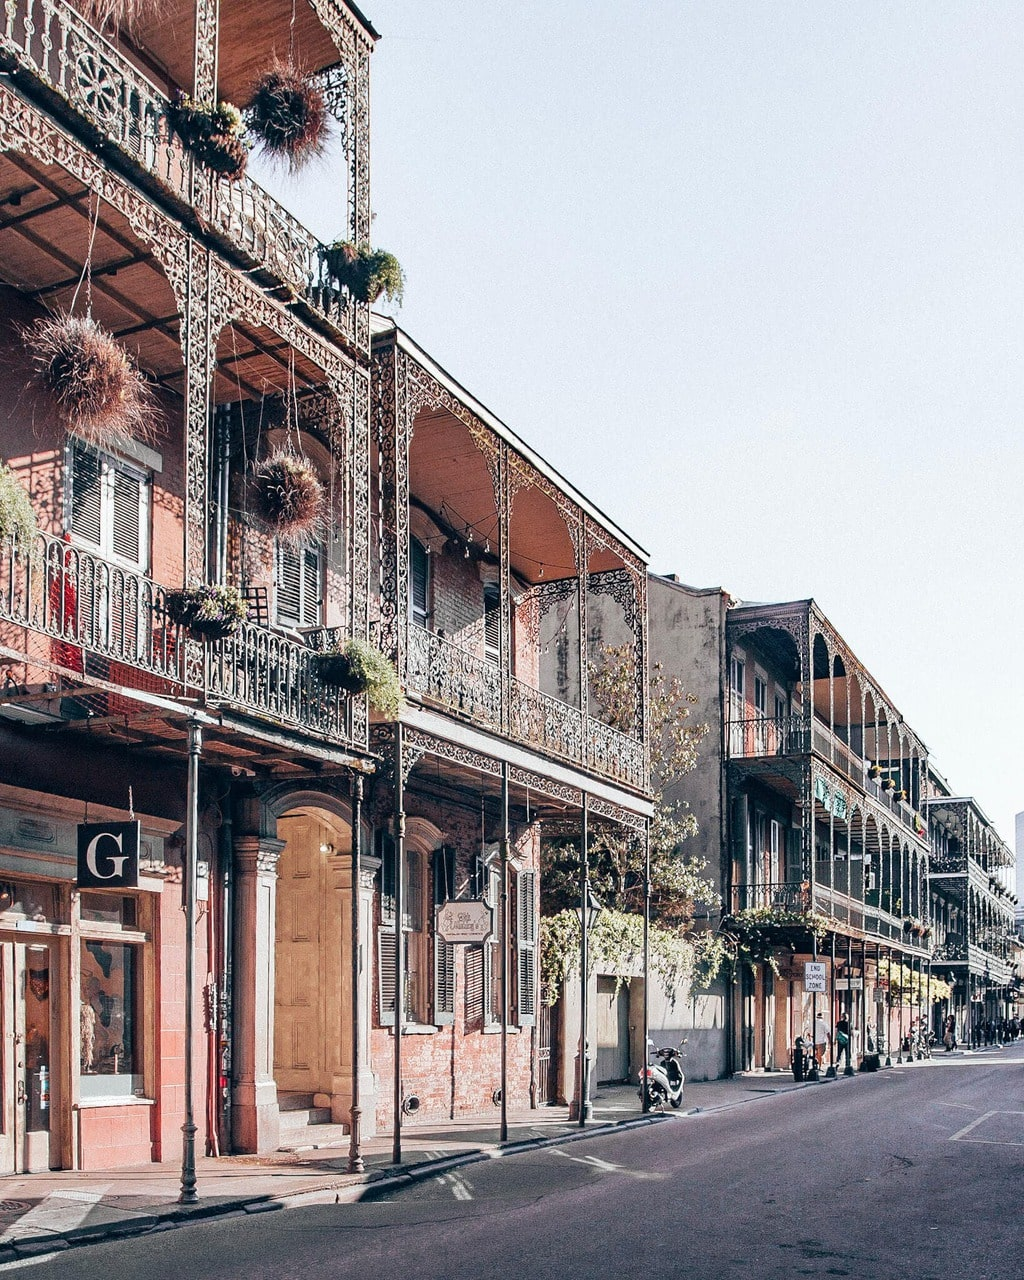 A street in the French Quarter in New Orleans, Louisiana